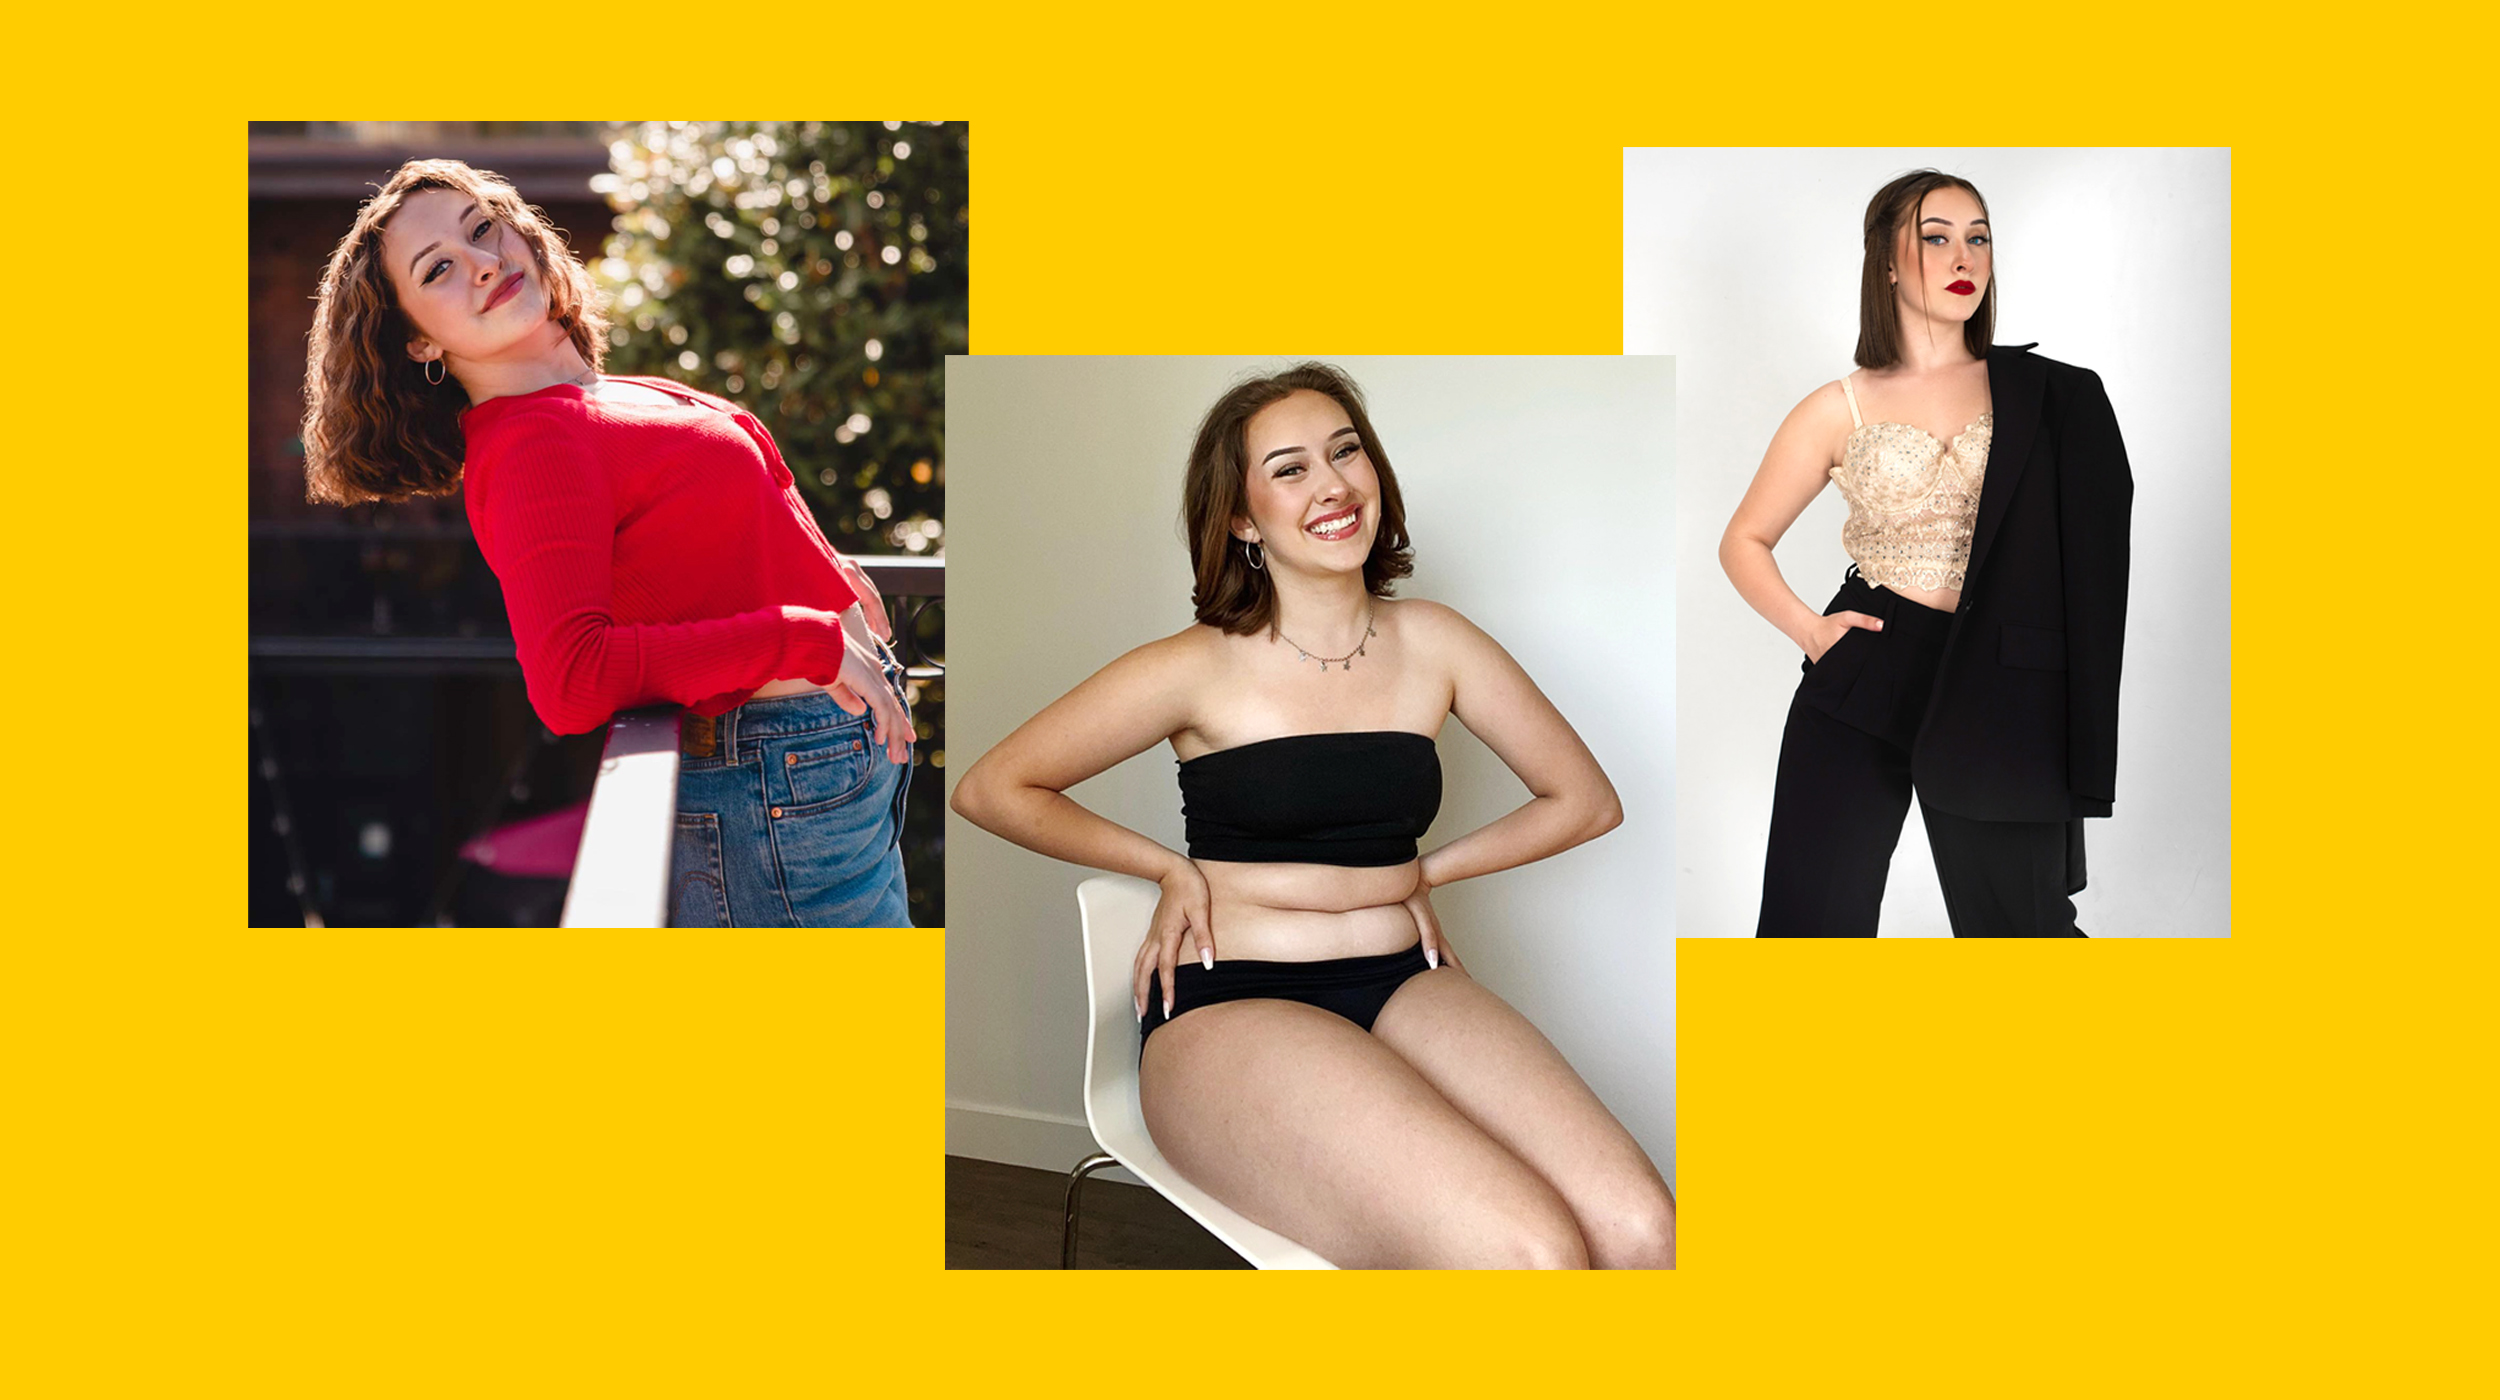 Tiktok Users Try To Fight Traditional Beauty Standards By Showing Off Their Bellies